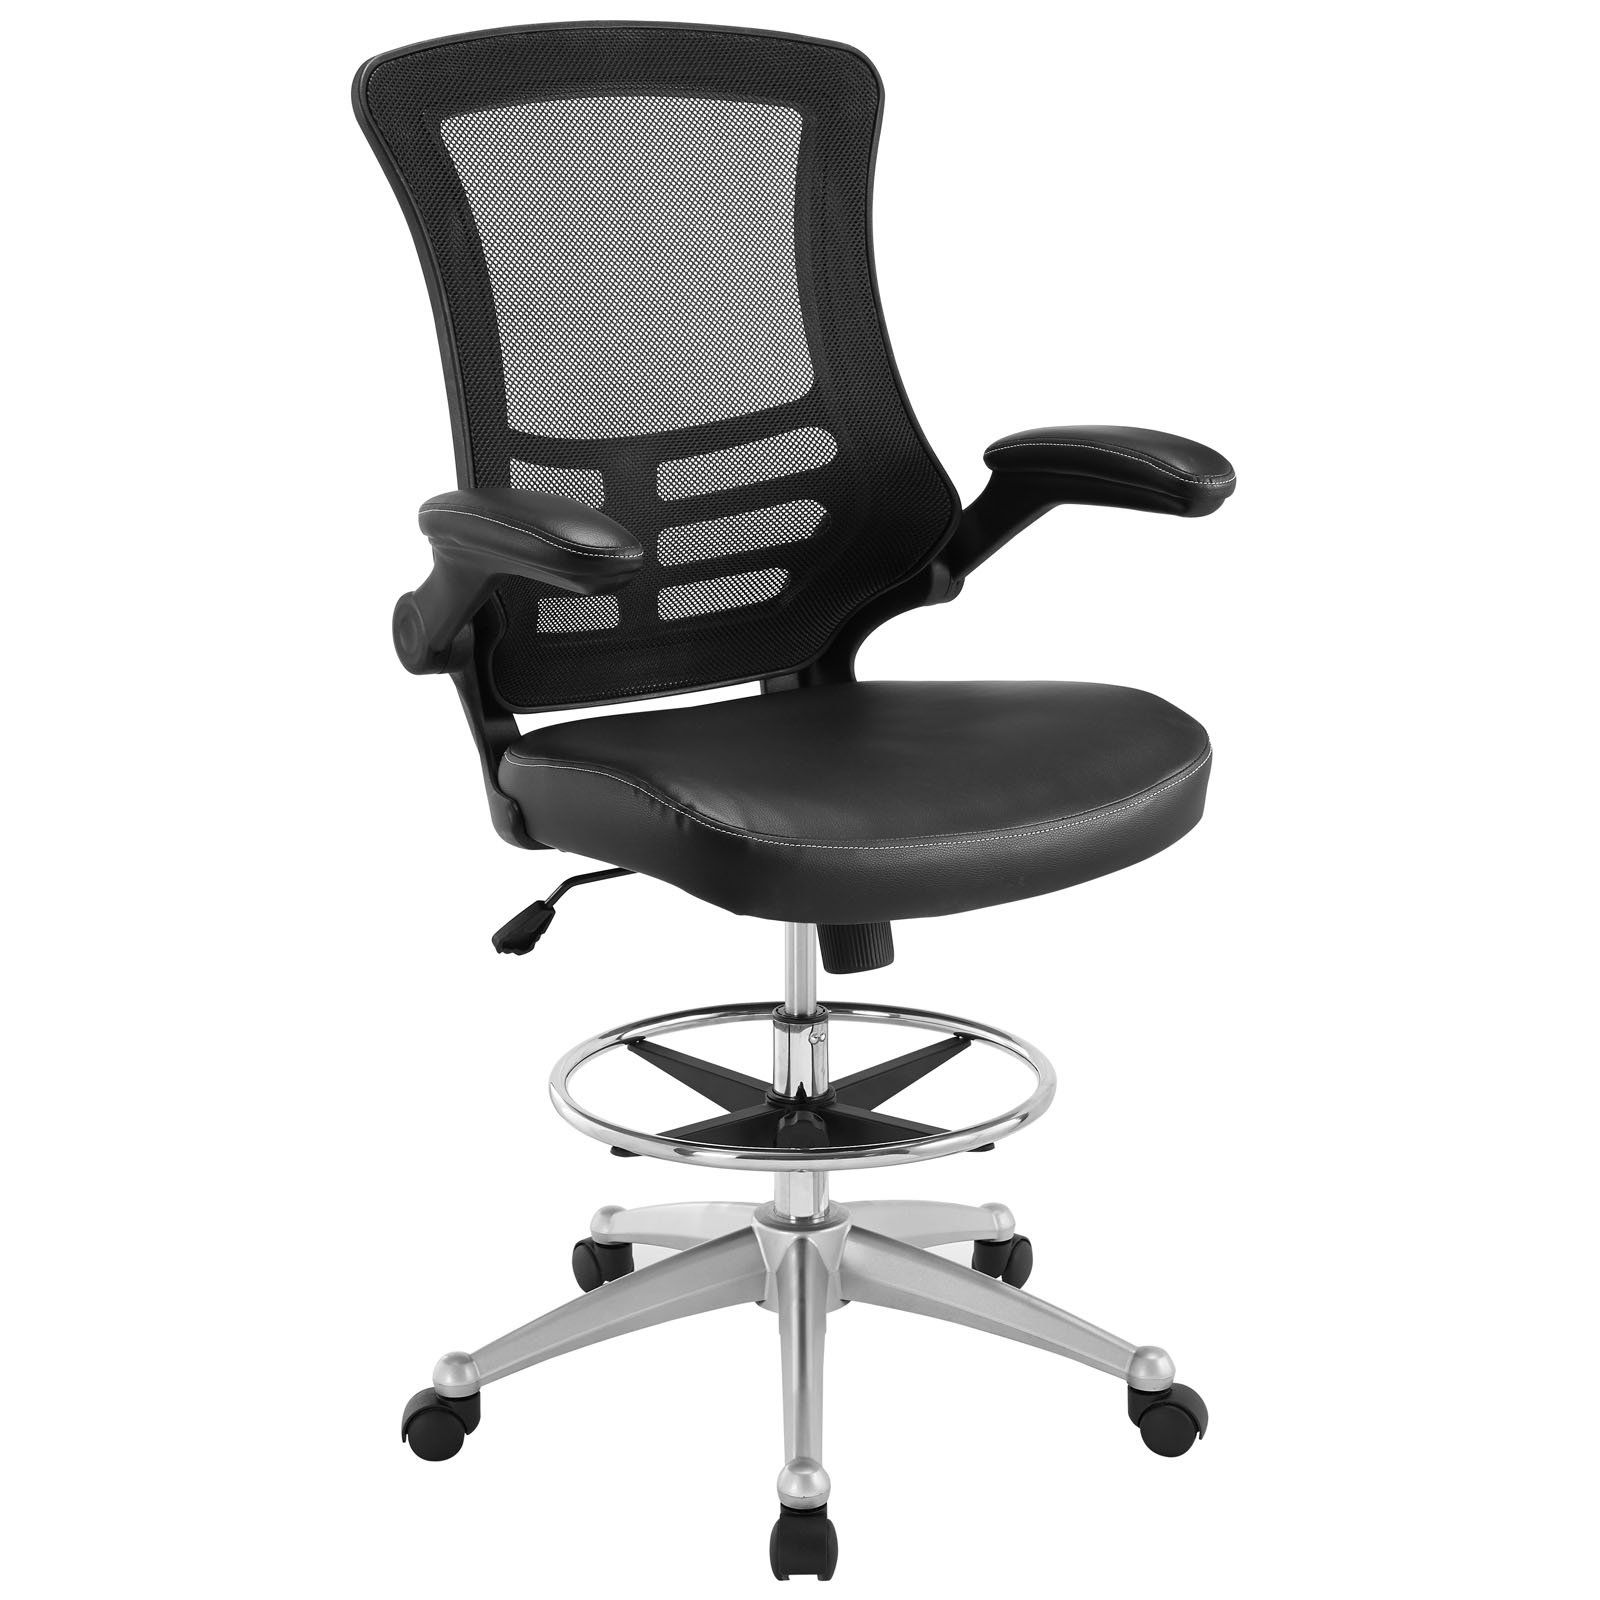 Modway Attainment Drafting Chair In Black - Tall Office Chair For Adjustable Standing Desks - Drafting Stool With Flip-Up Arm Drafting Table Chair by Modway